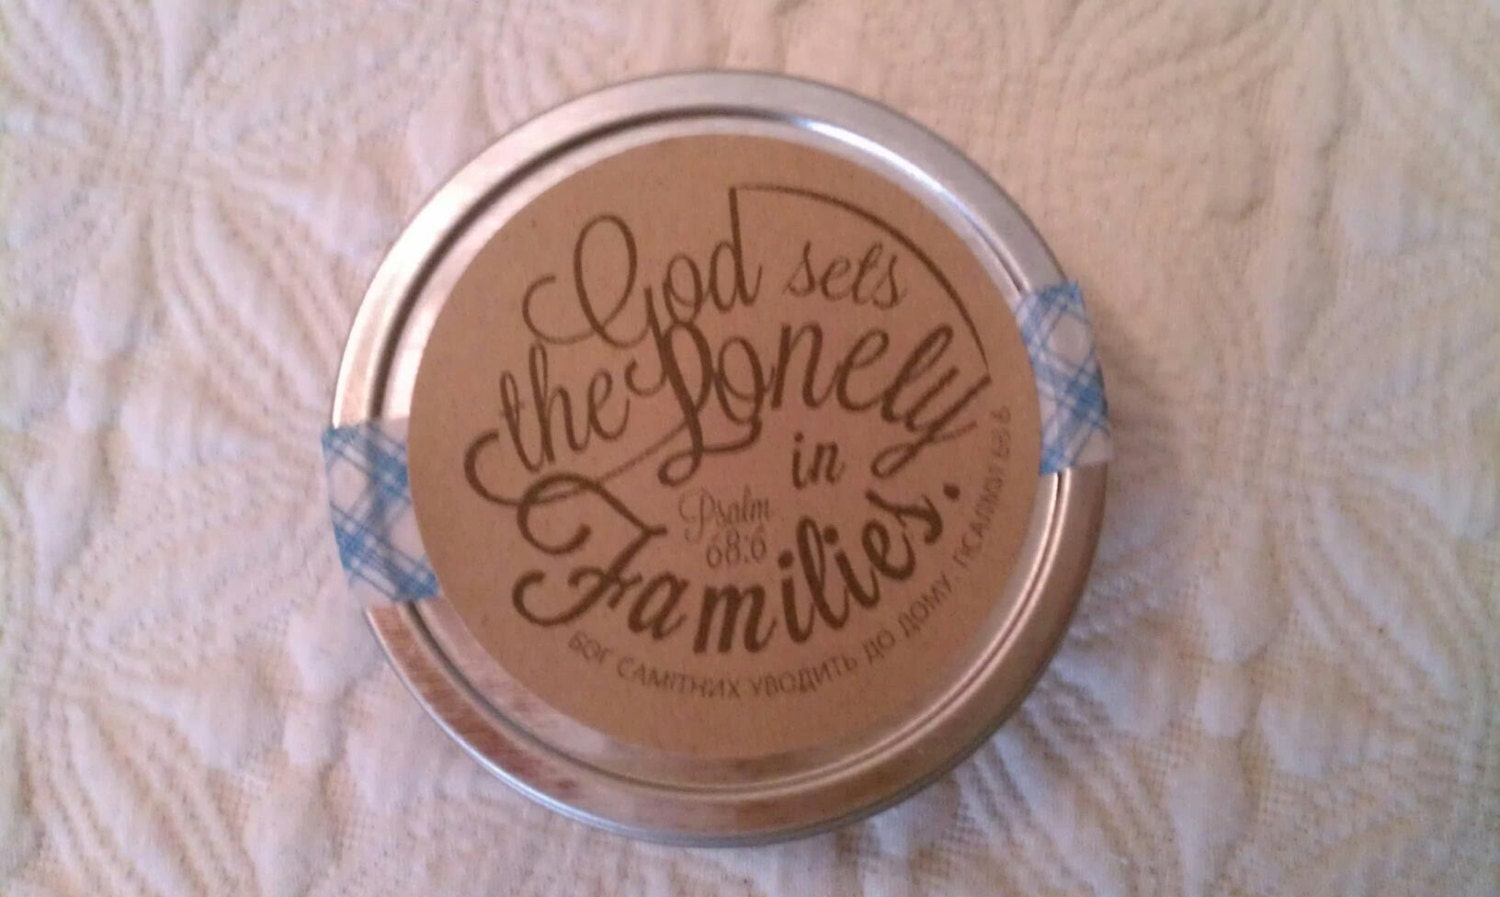 Home-made, all natural lotion bar